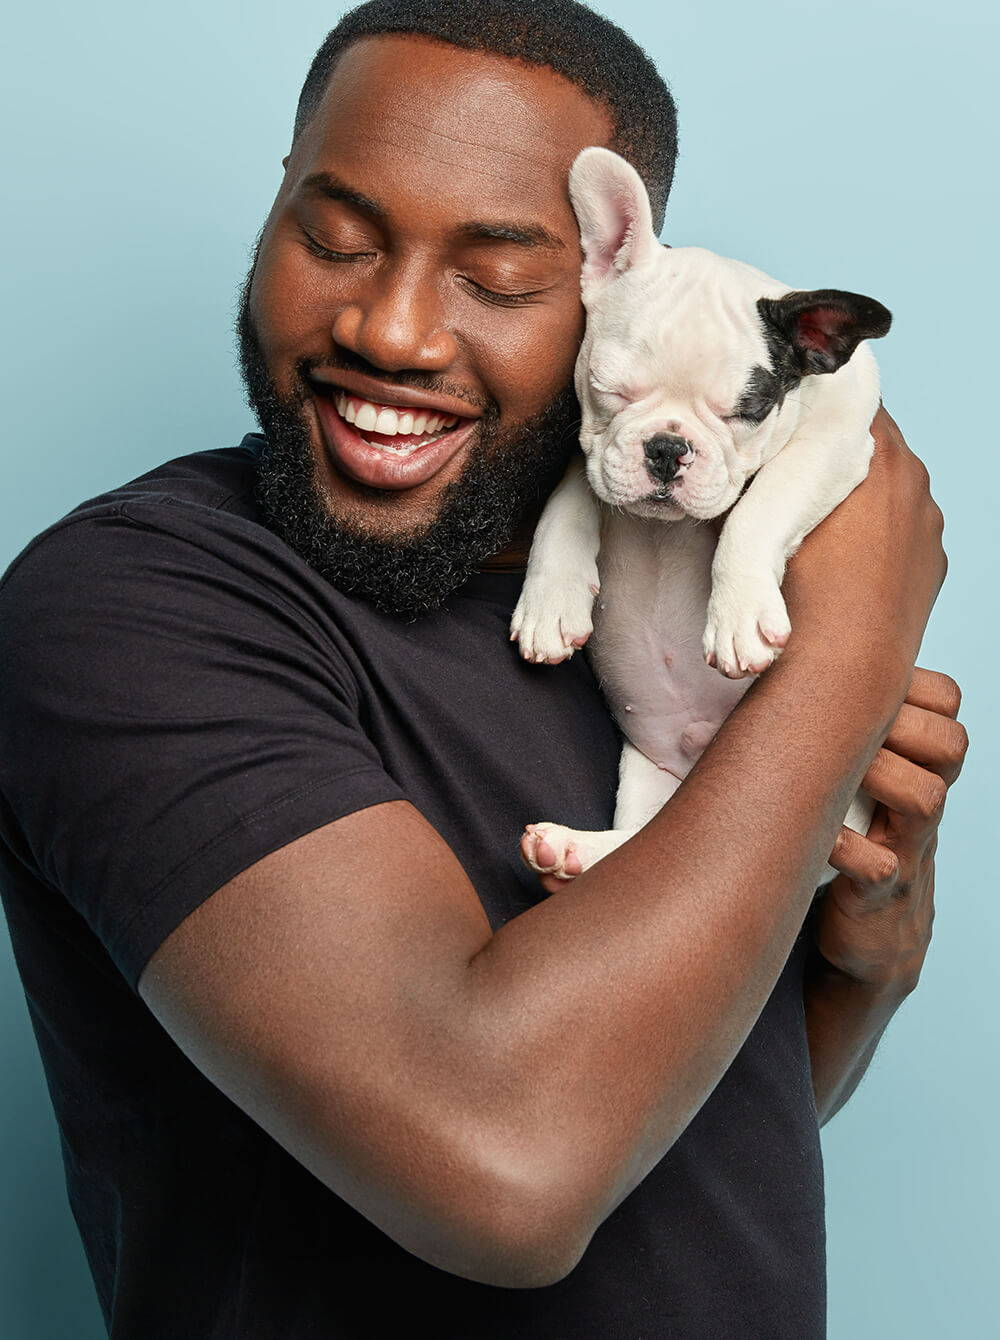 Man Holding A Small Dog